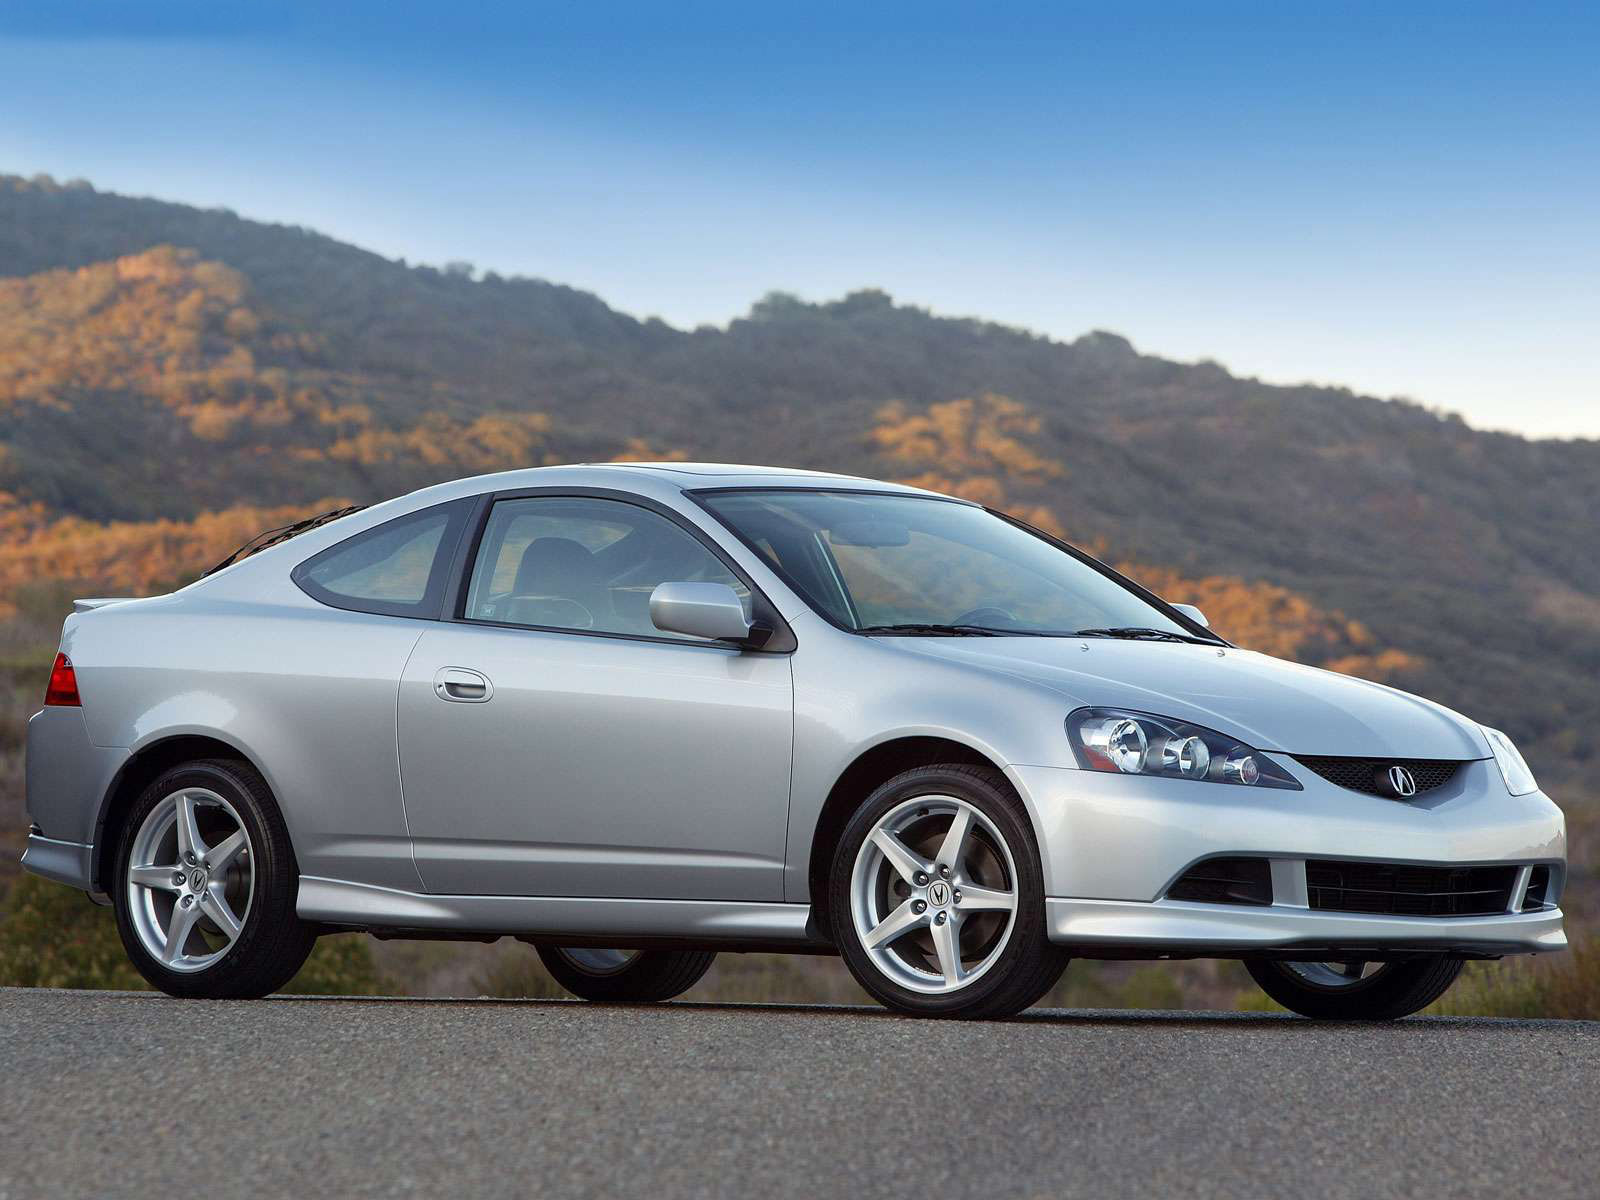 2005 Acura RSX Type-S photo - 1